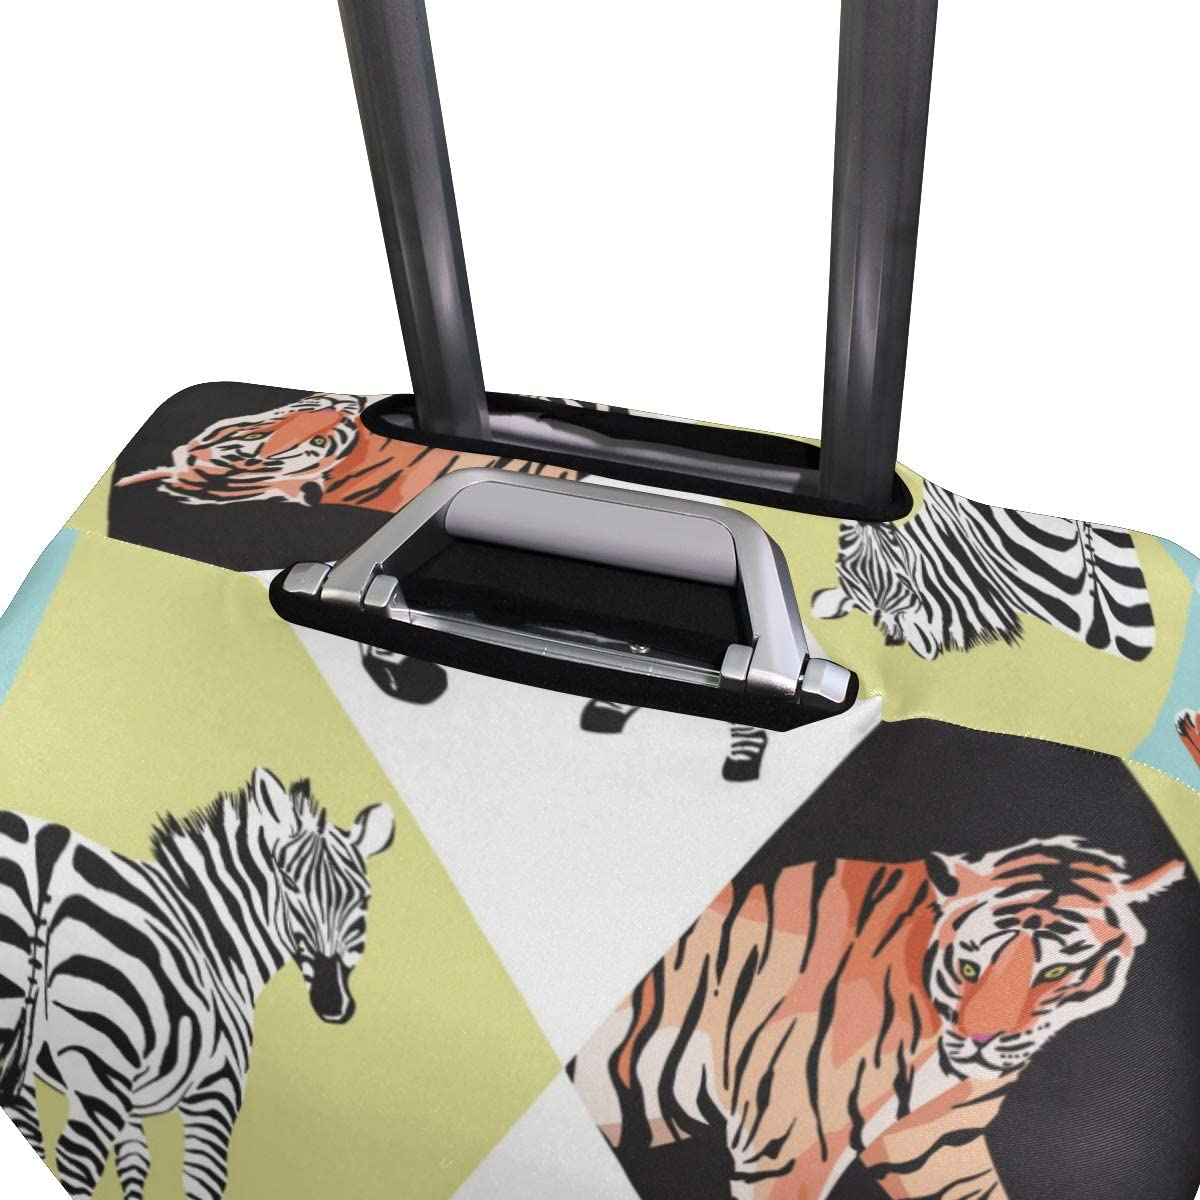 GIOVANIOR Tiger Leopard Flamingo Zebra Luggage Cover Suitcase Protector Carry On Covers